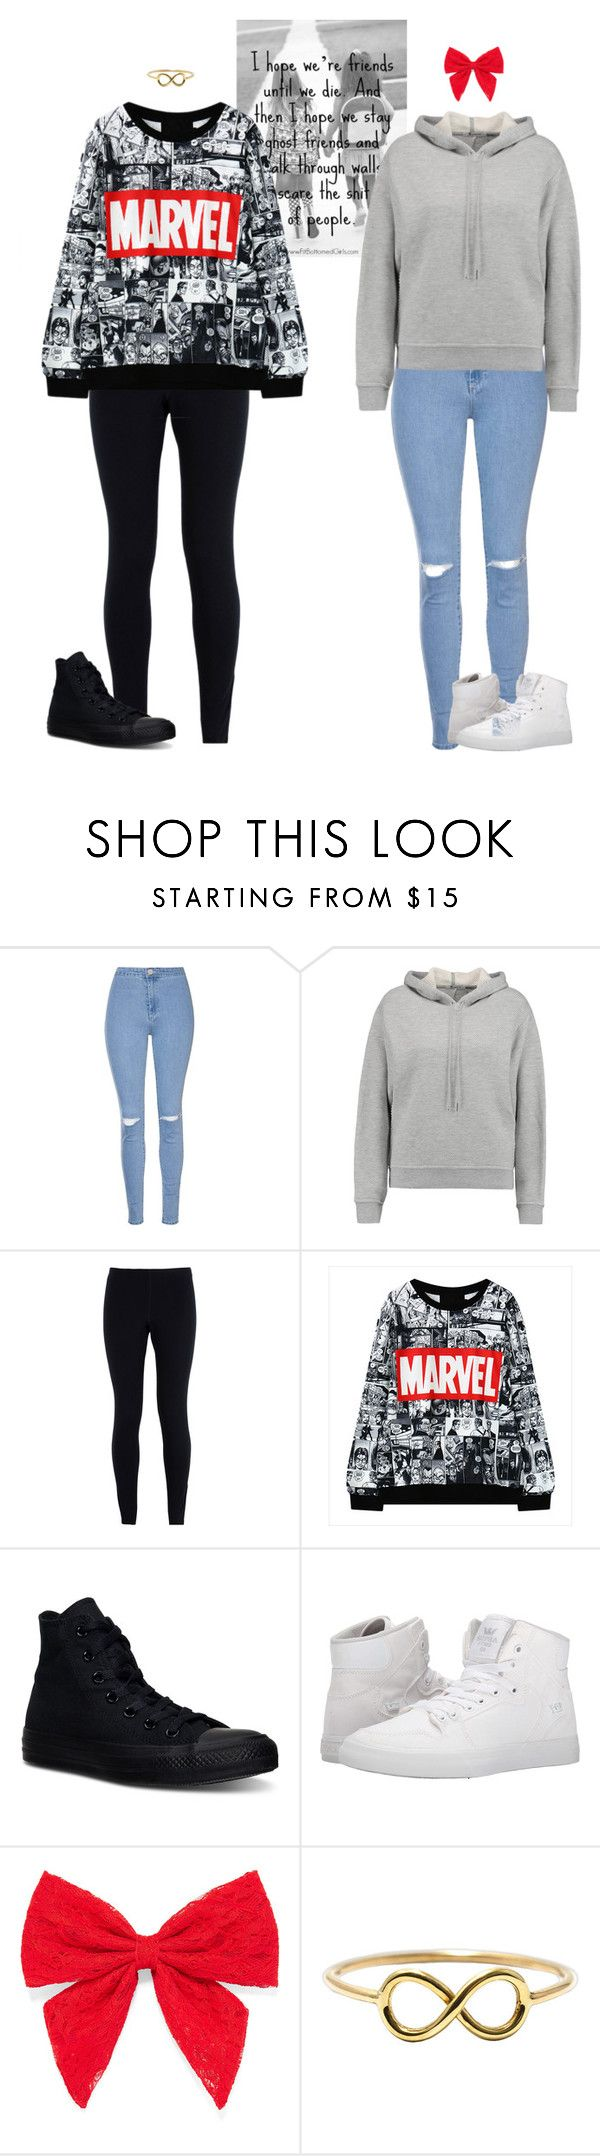 """""""You & I"""" by dj1direction ❤ liked on Polyvore featuring Glamorous, T By Alexander Wang, NIKE, Converse, Supra and Carole"""